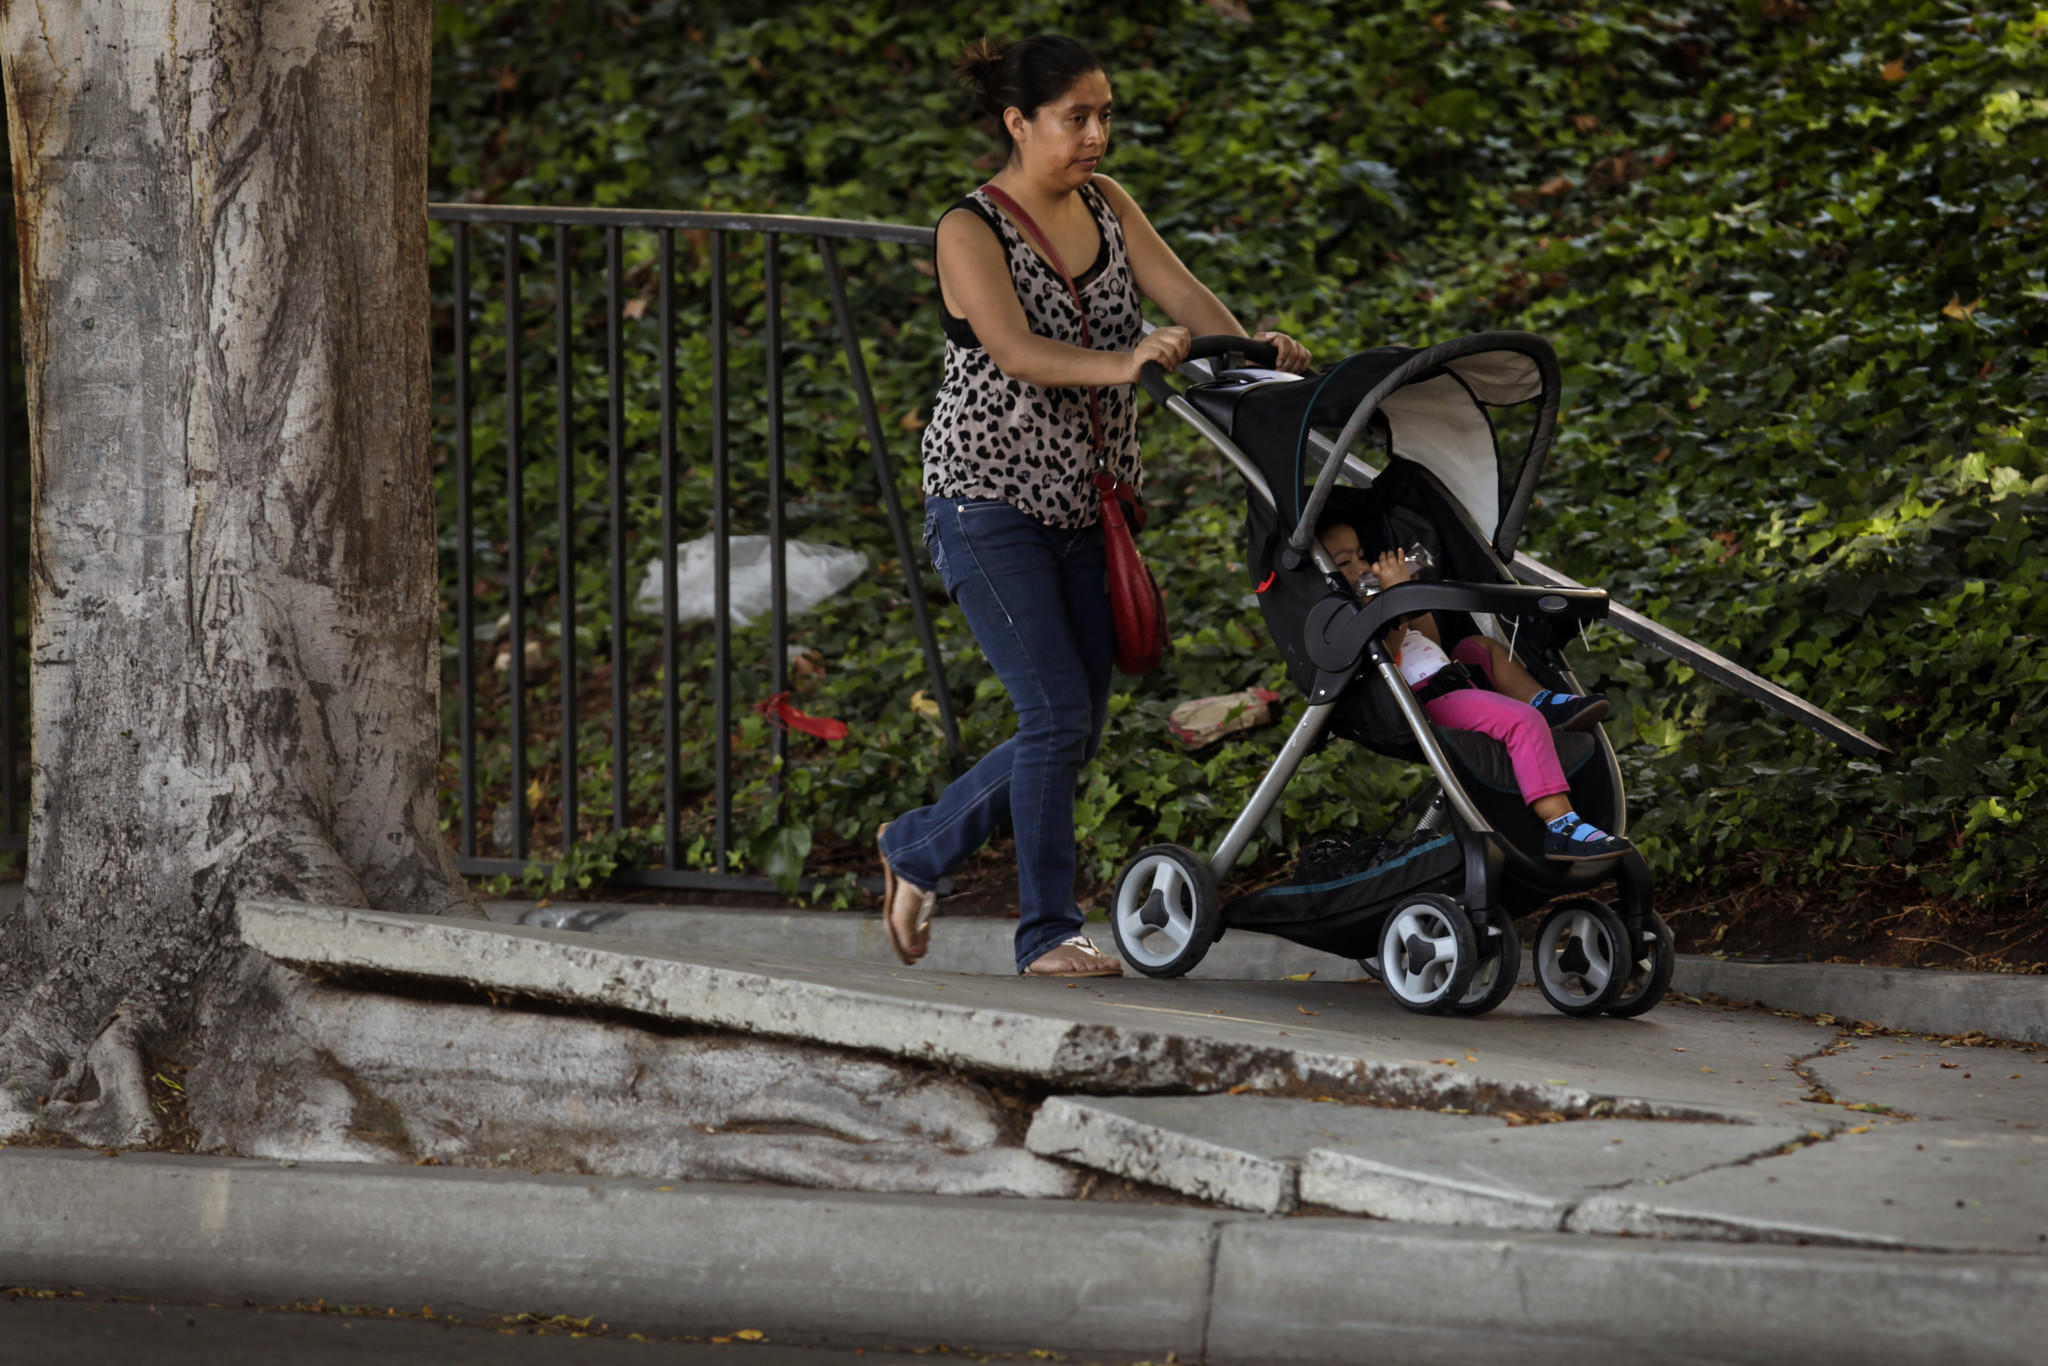 Next week, the City Council is expected to reconsider the sidewalk spending plan.